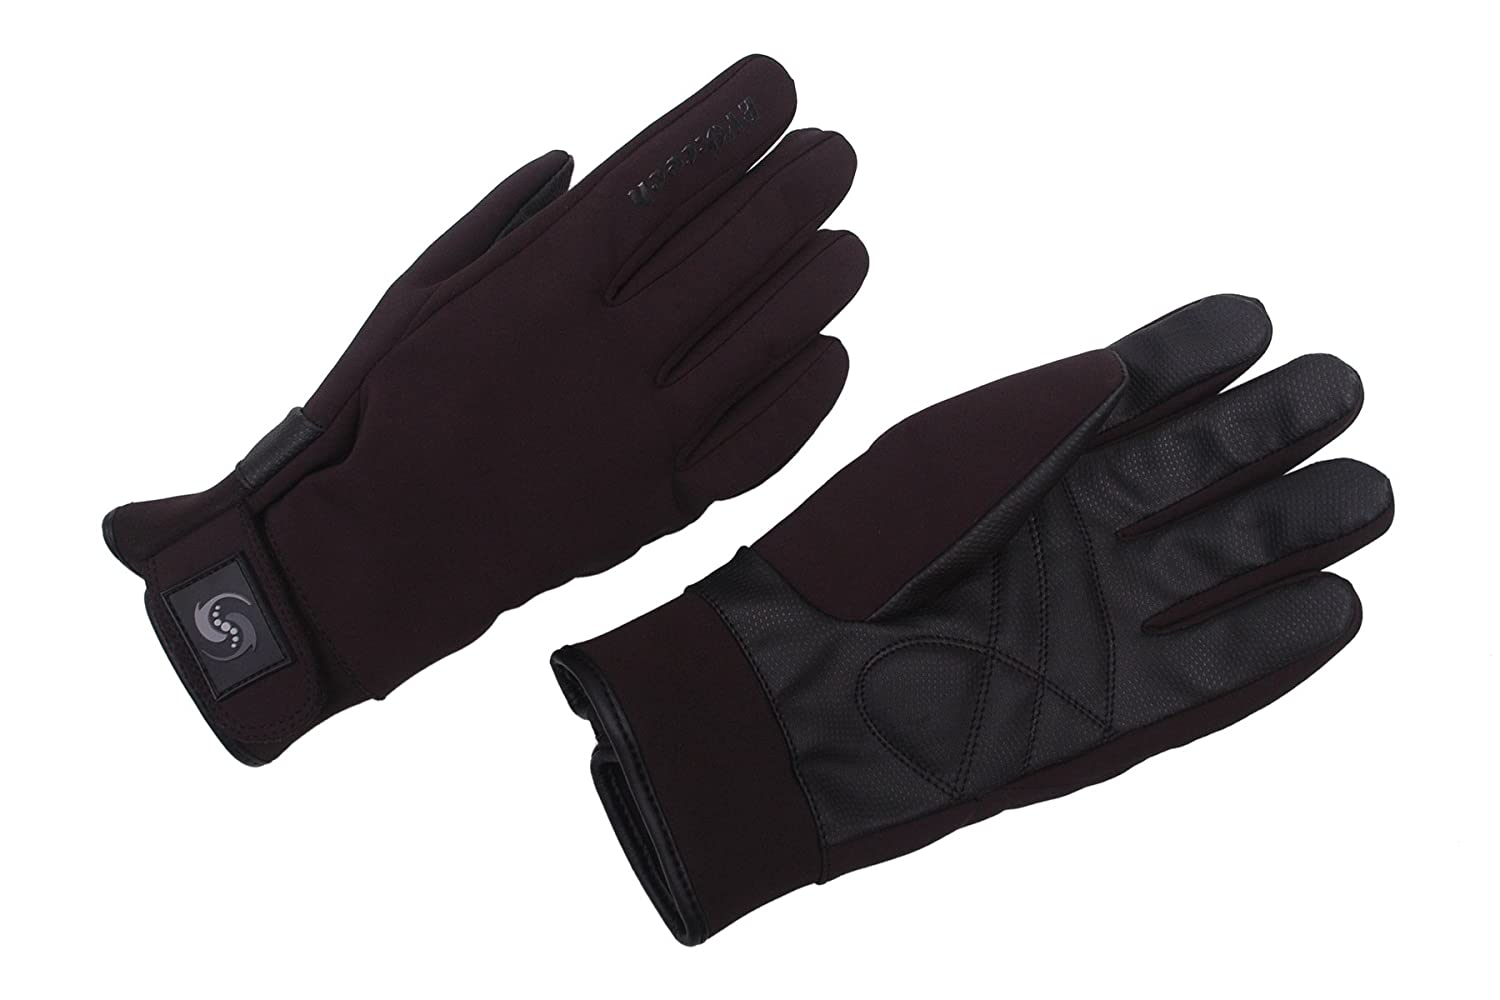 Must-Have Accessories for Outdoor Activities Eyo Tech Essentials Waterproof Winter Cycling Gloves for Adults Insulated for Extra Warmth